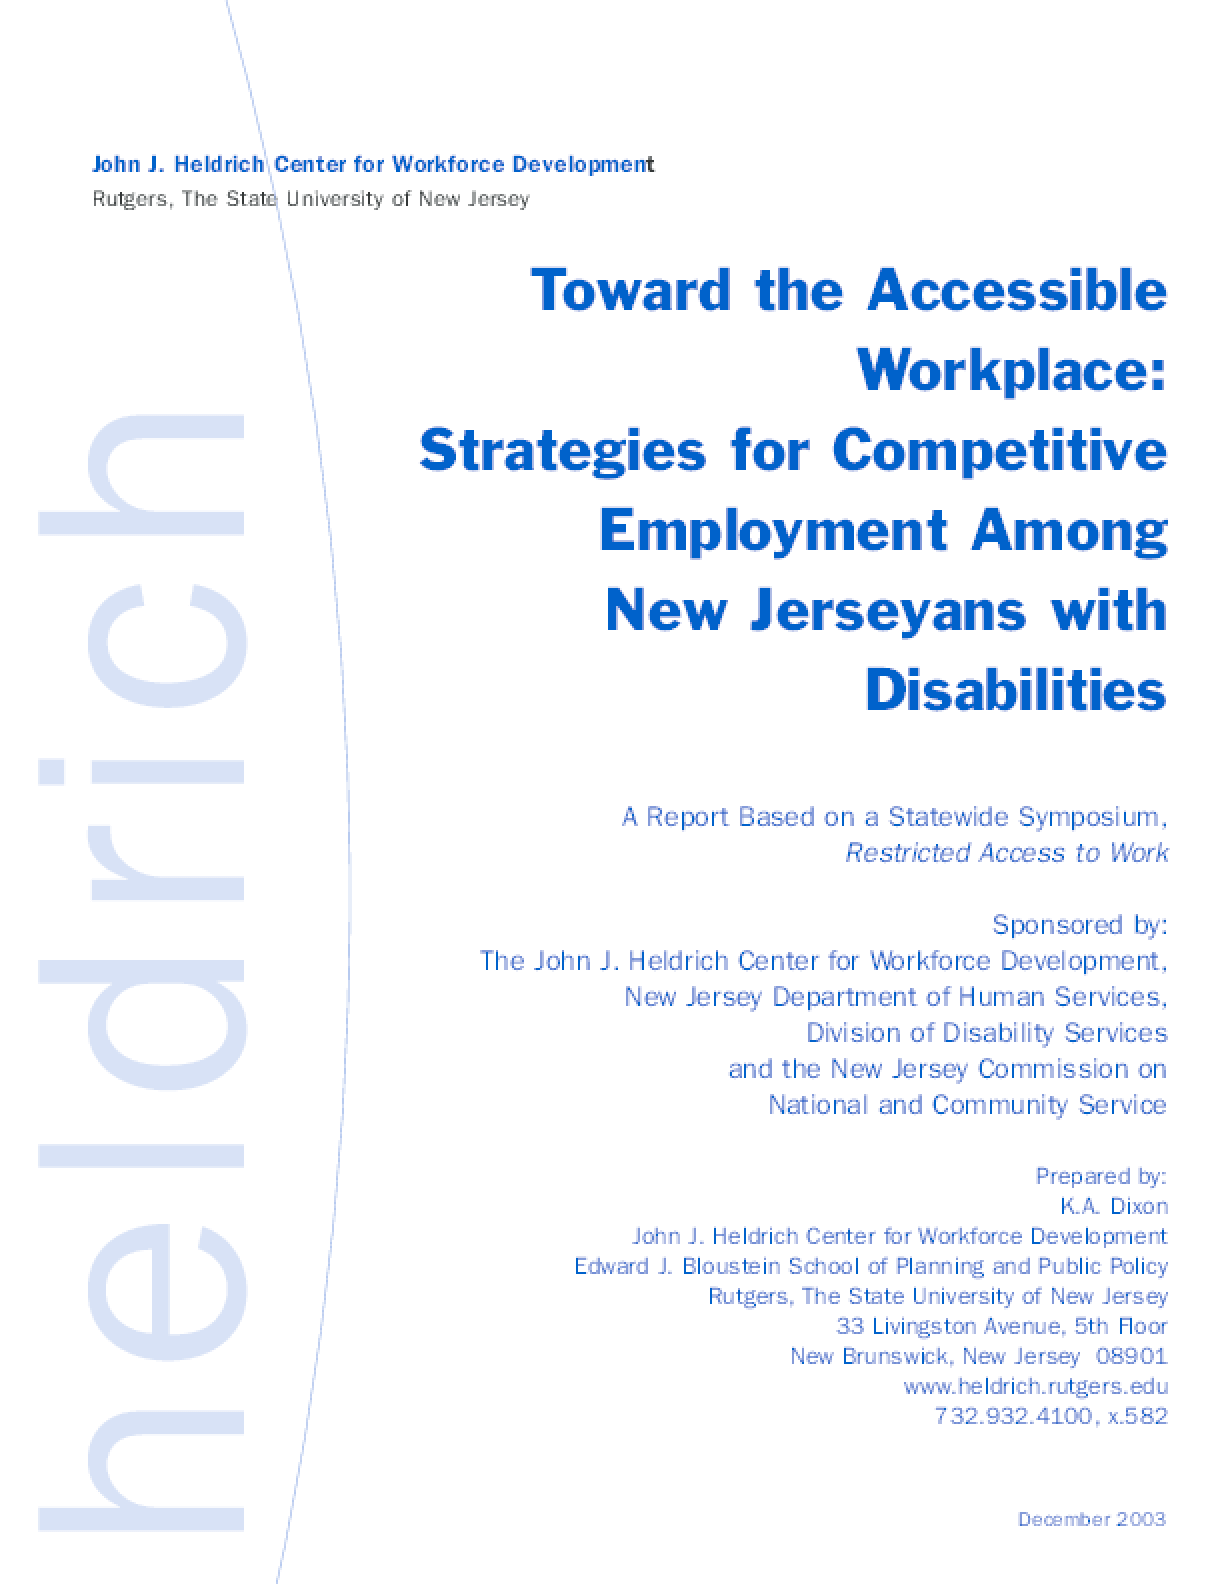 Toward the Accessible Workplace: Strategies for Competitive Employment-People with Disabilities